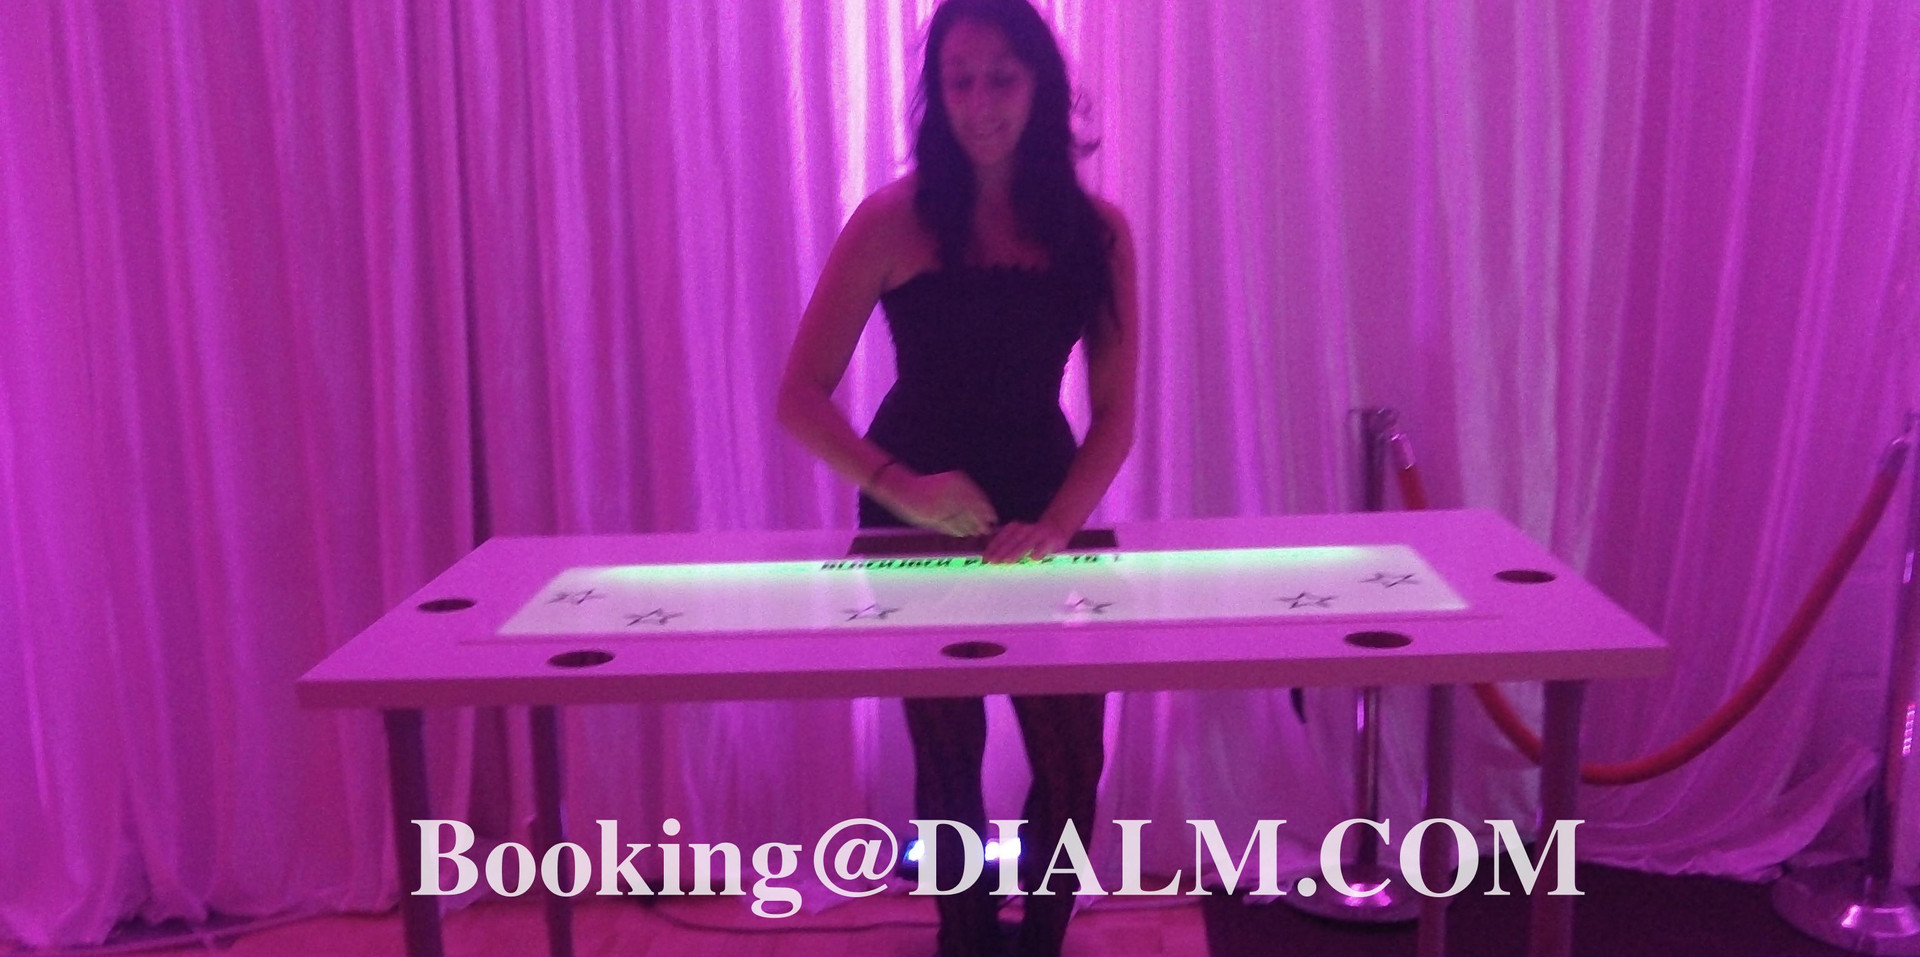 Casino tables that light up by dialm.com